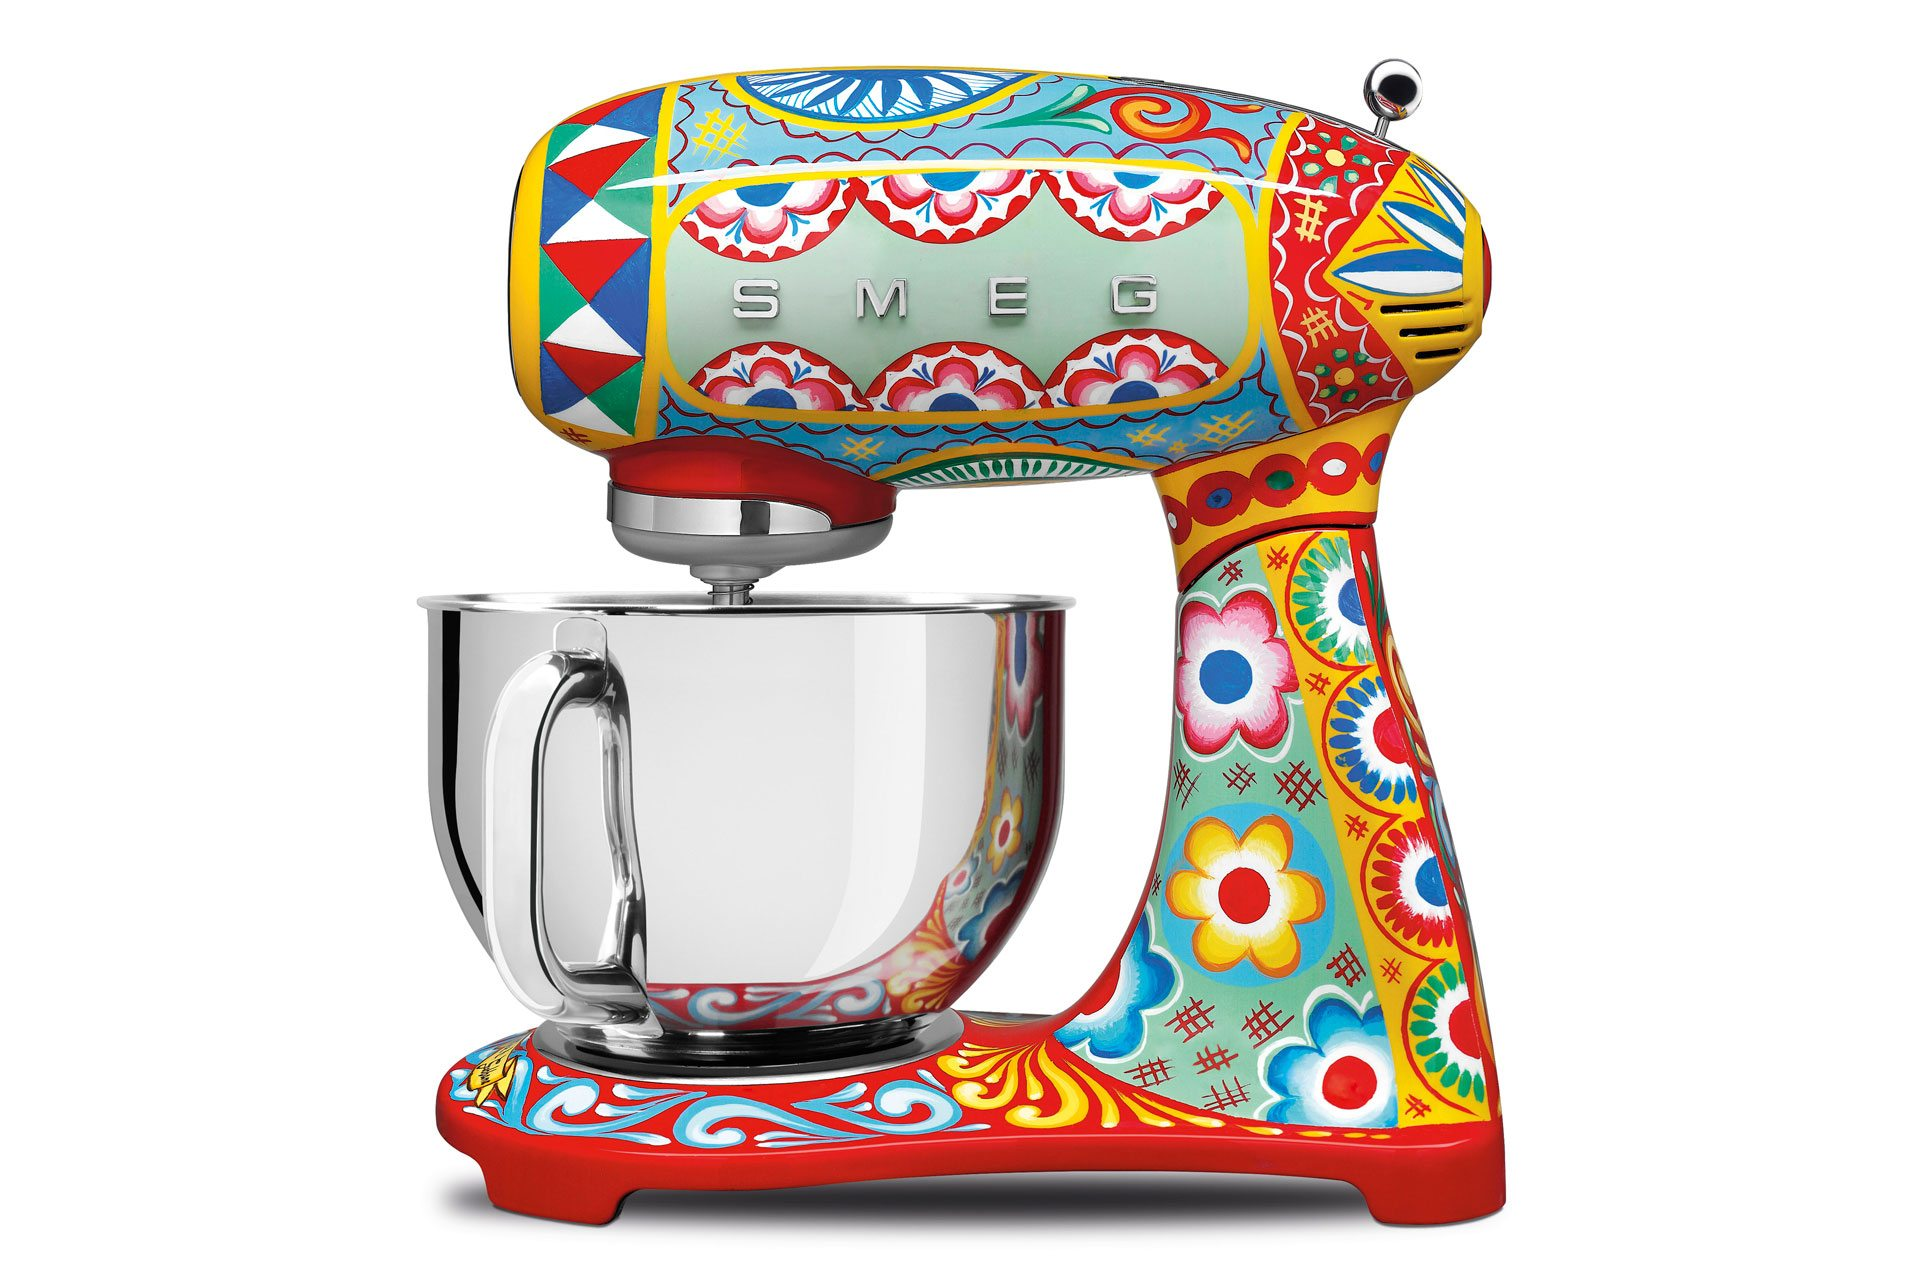 Smeg Küchengeräte Dolce And Gabbana X Smeg Appliances 2018 Toaster Juicer